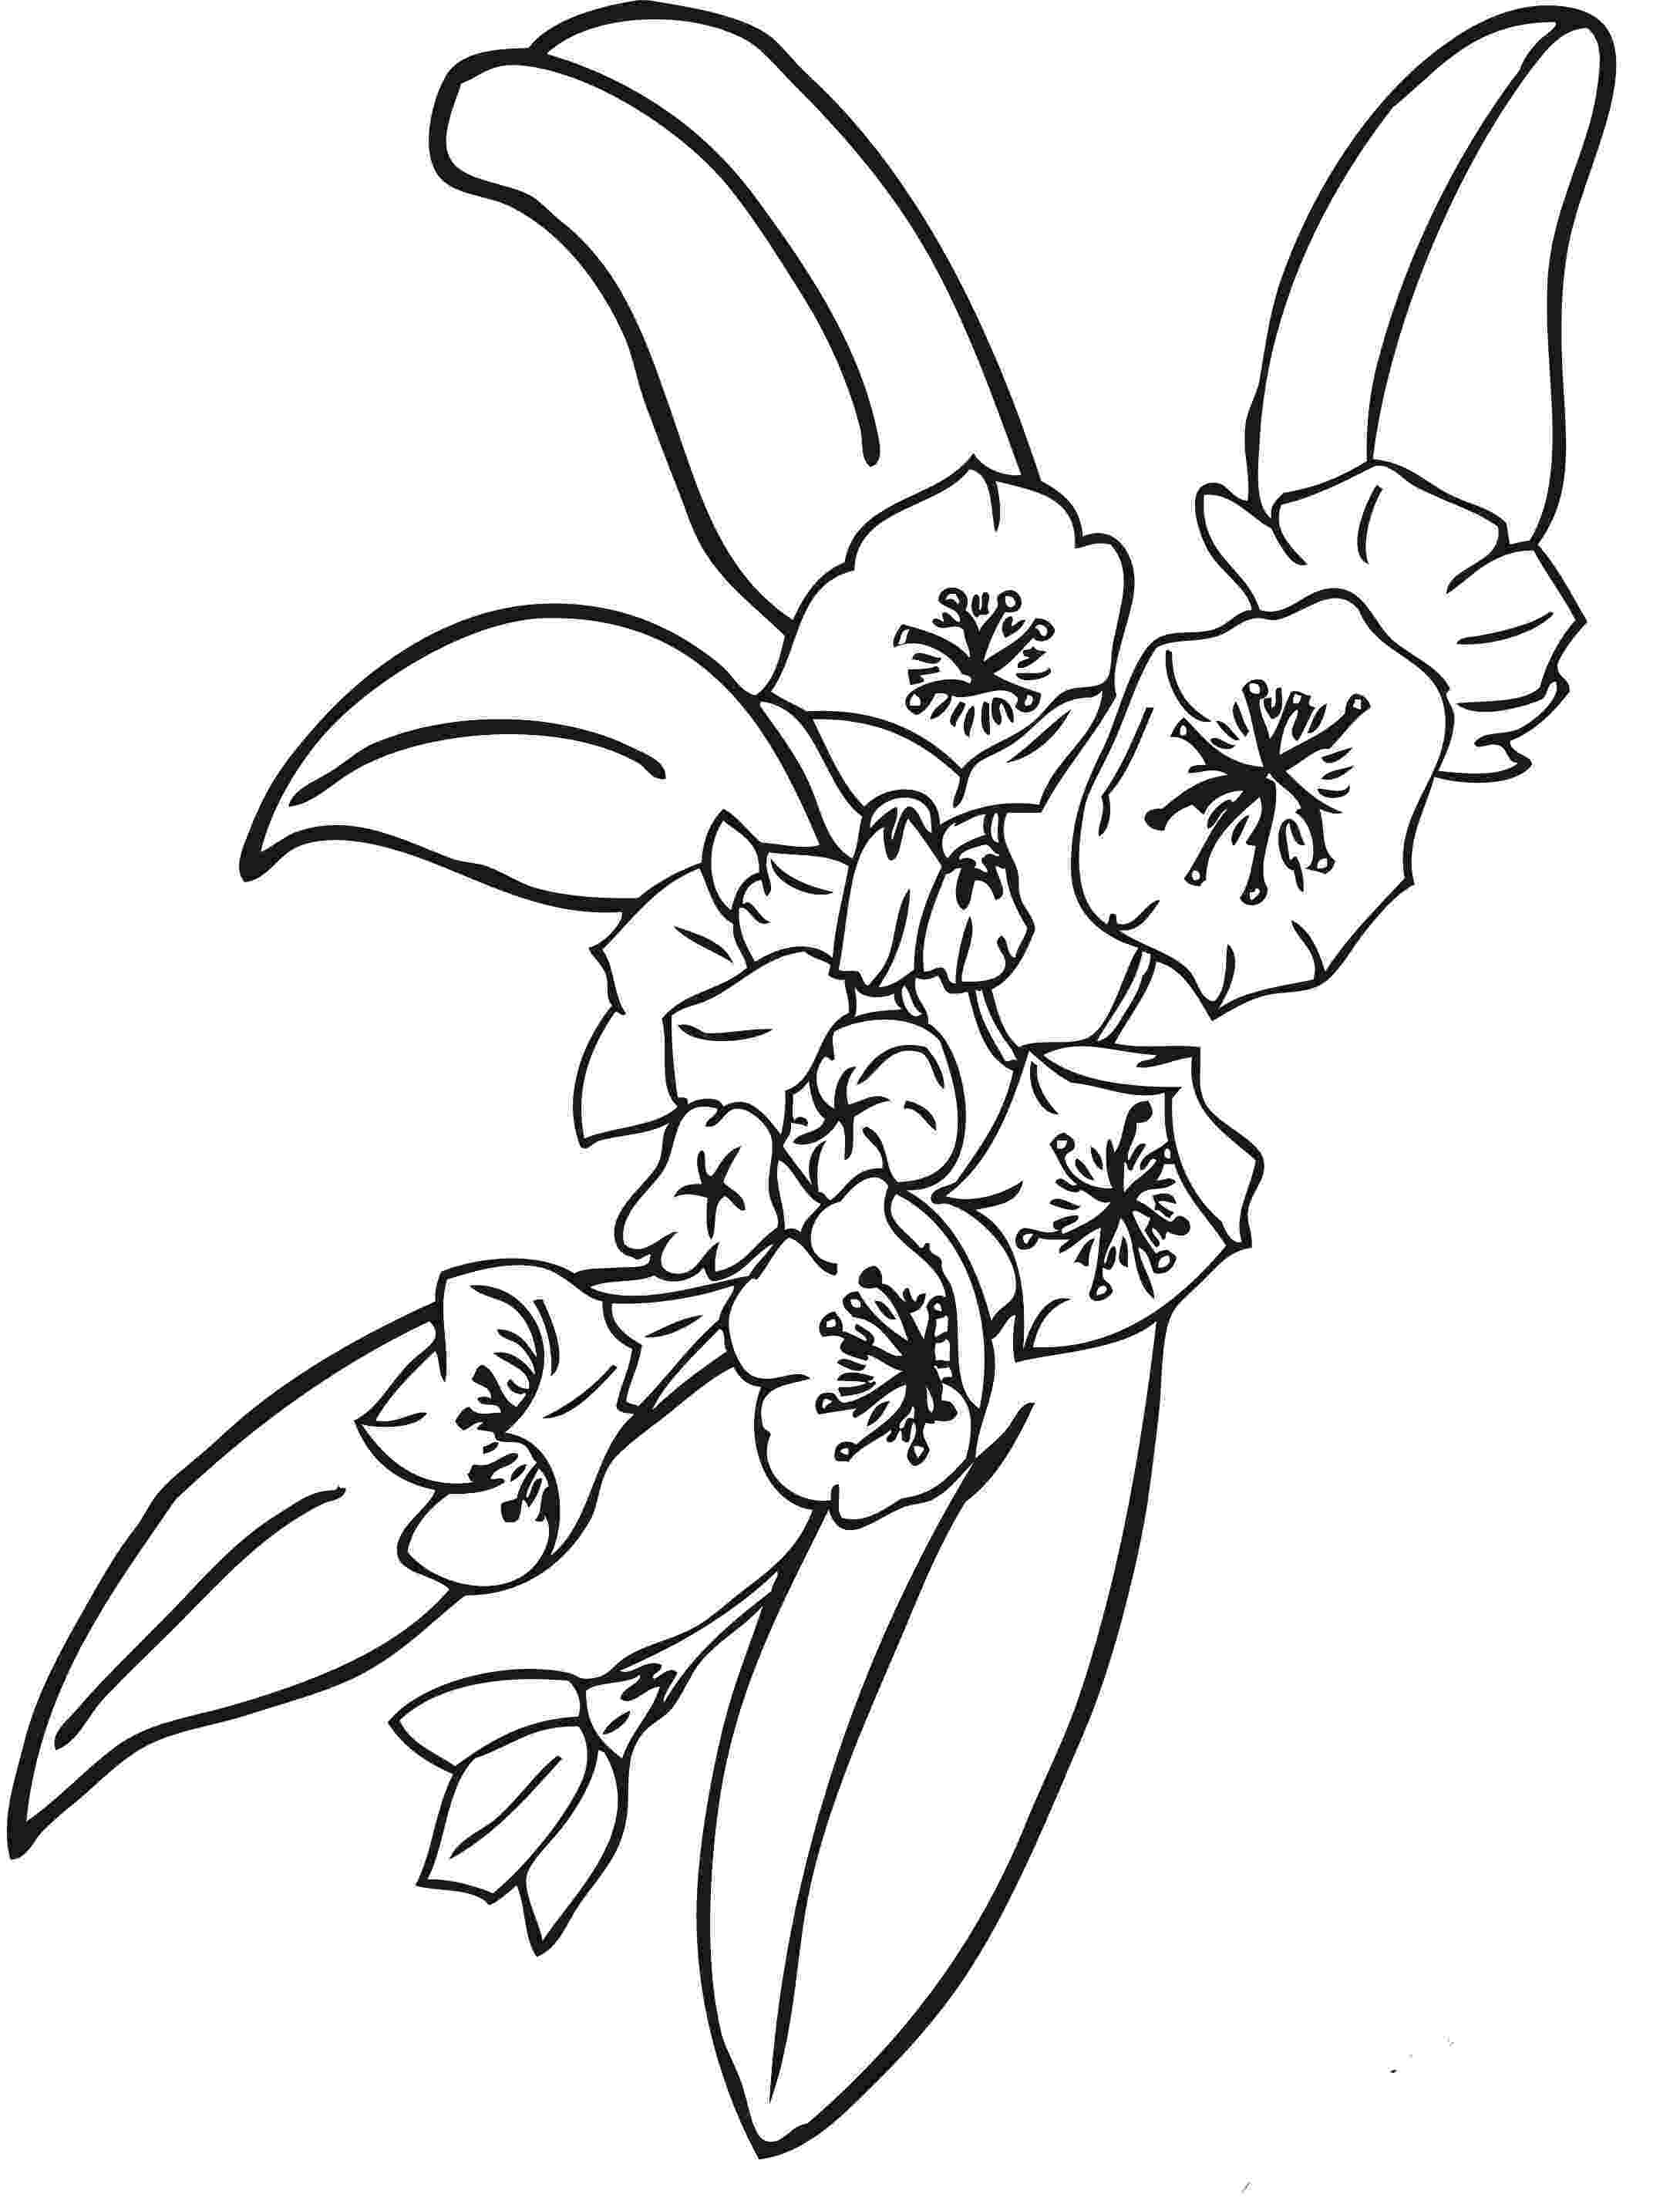 free coloring pictures of flowers simple flower coloring pages getcoloringpagescom pictures flowers coloring of free